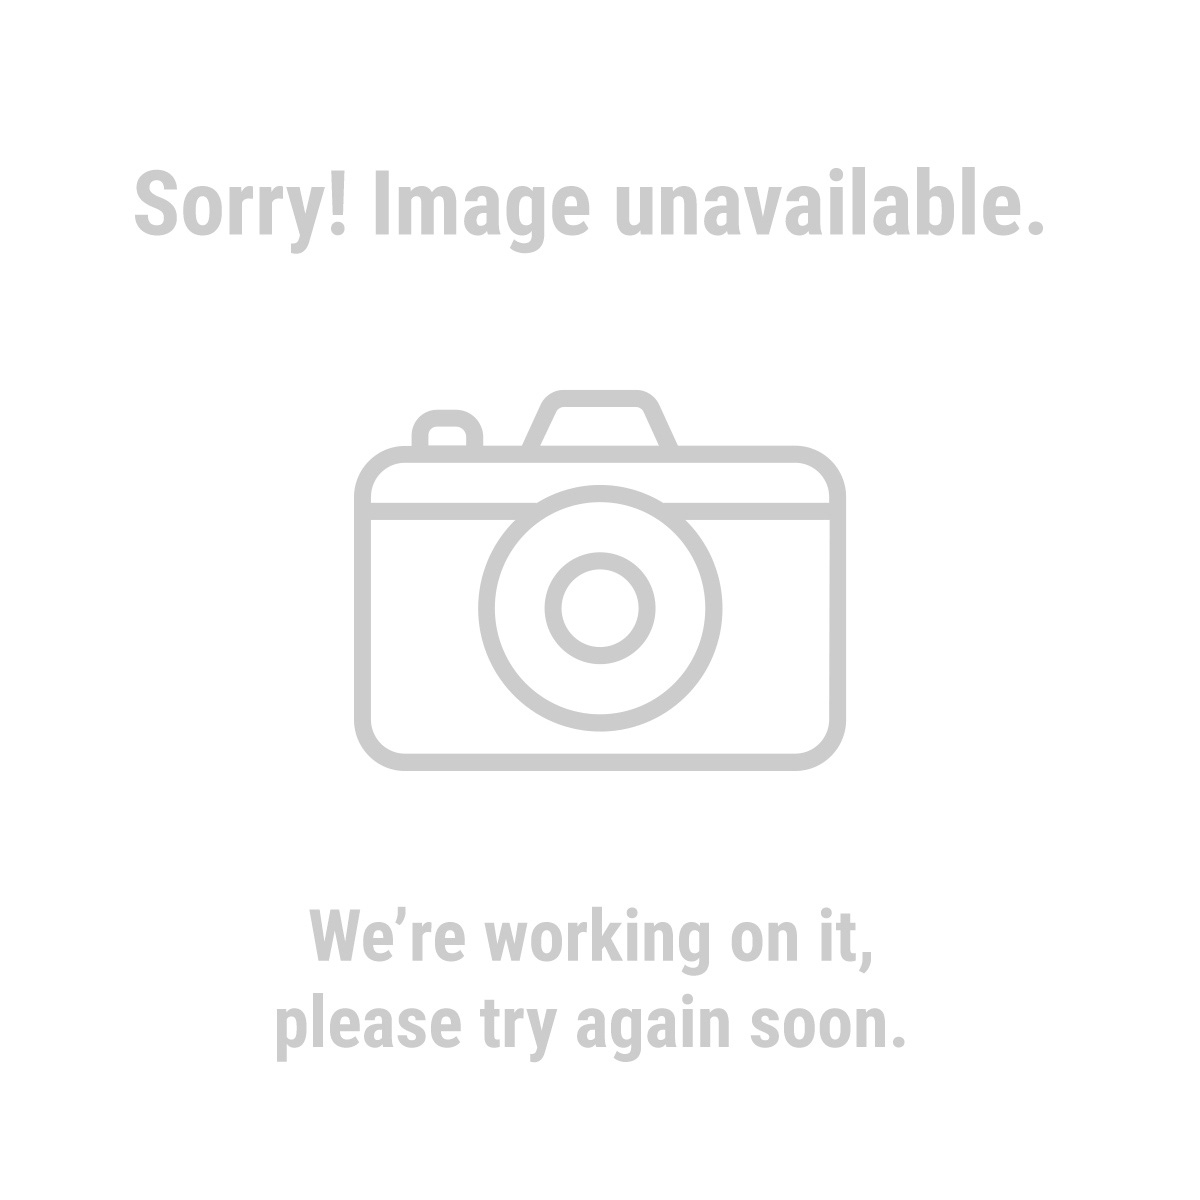 Central Pneumatic® 67696 1.5 Horsepower, 6 Gallon, 150 PSI Professional Oilless Air Compressor